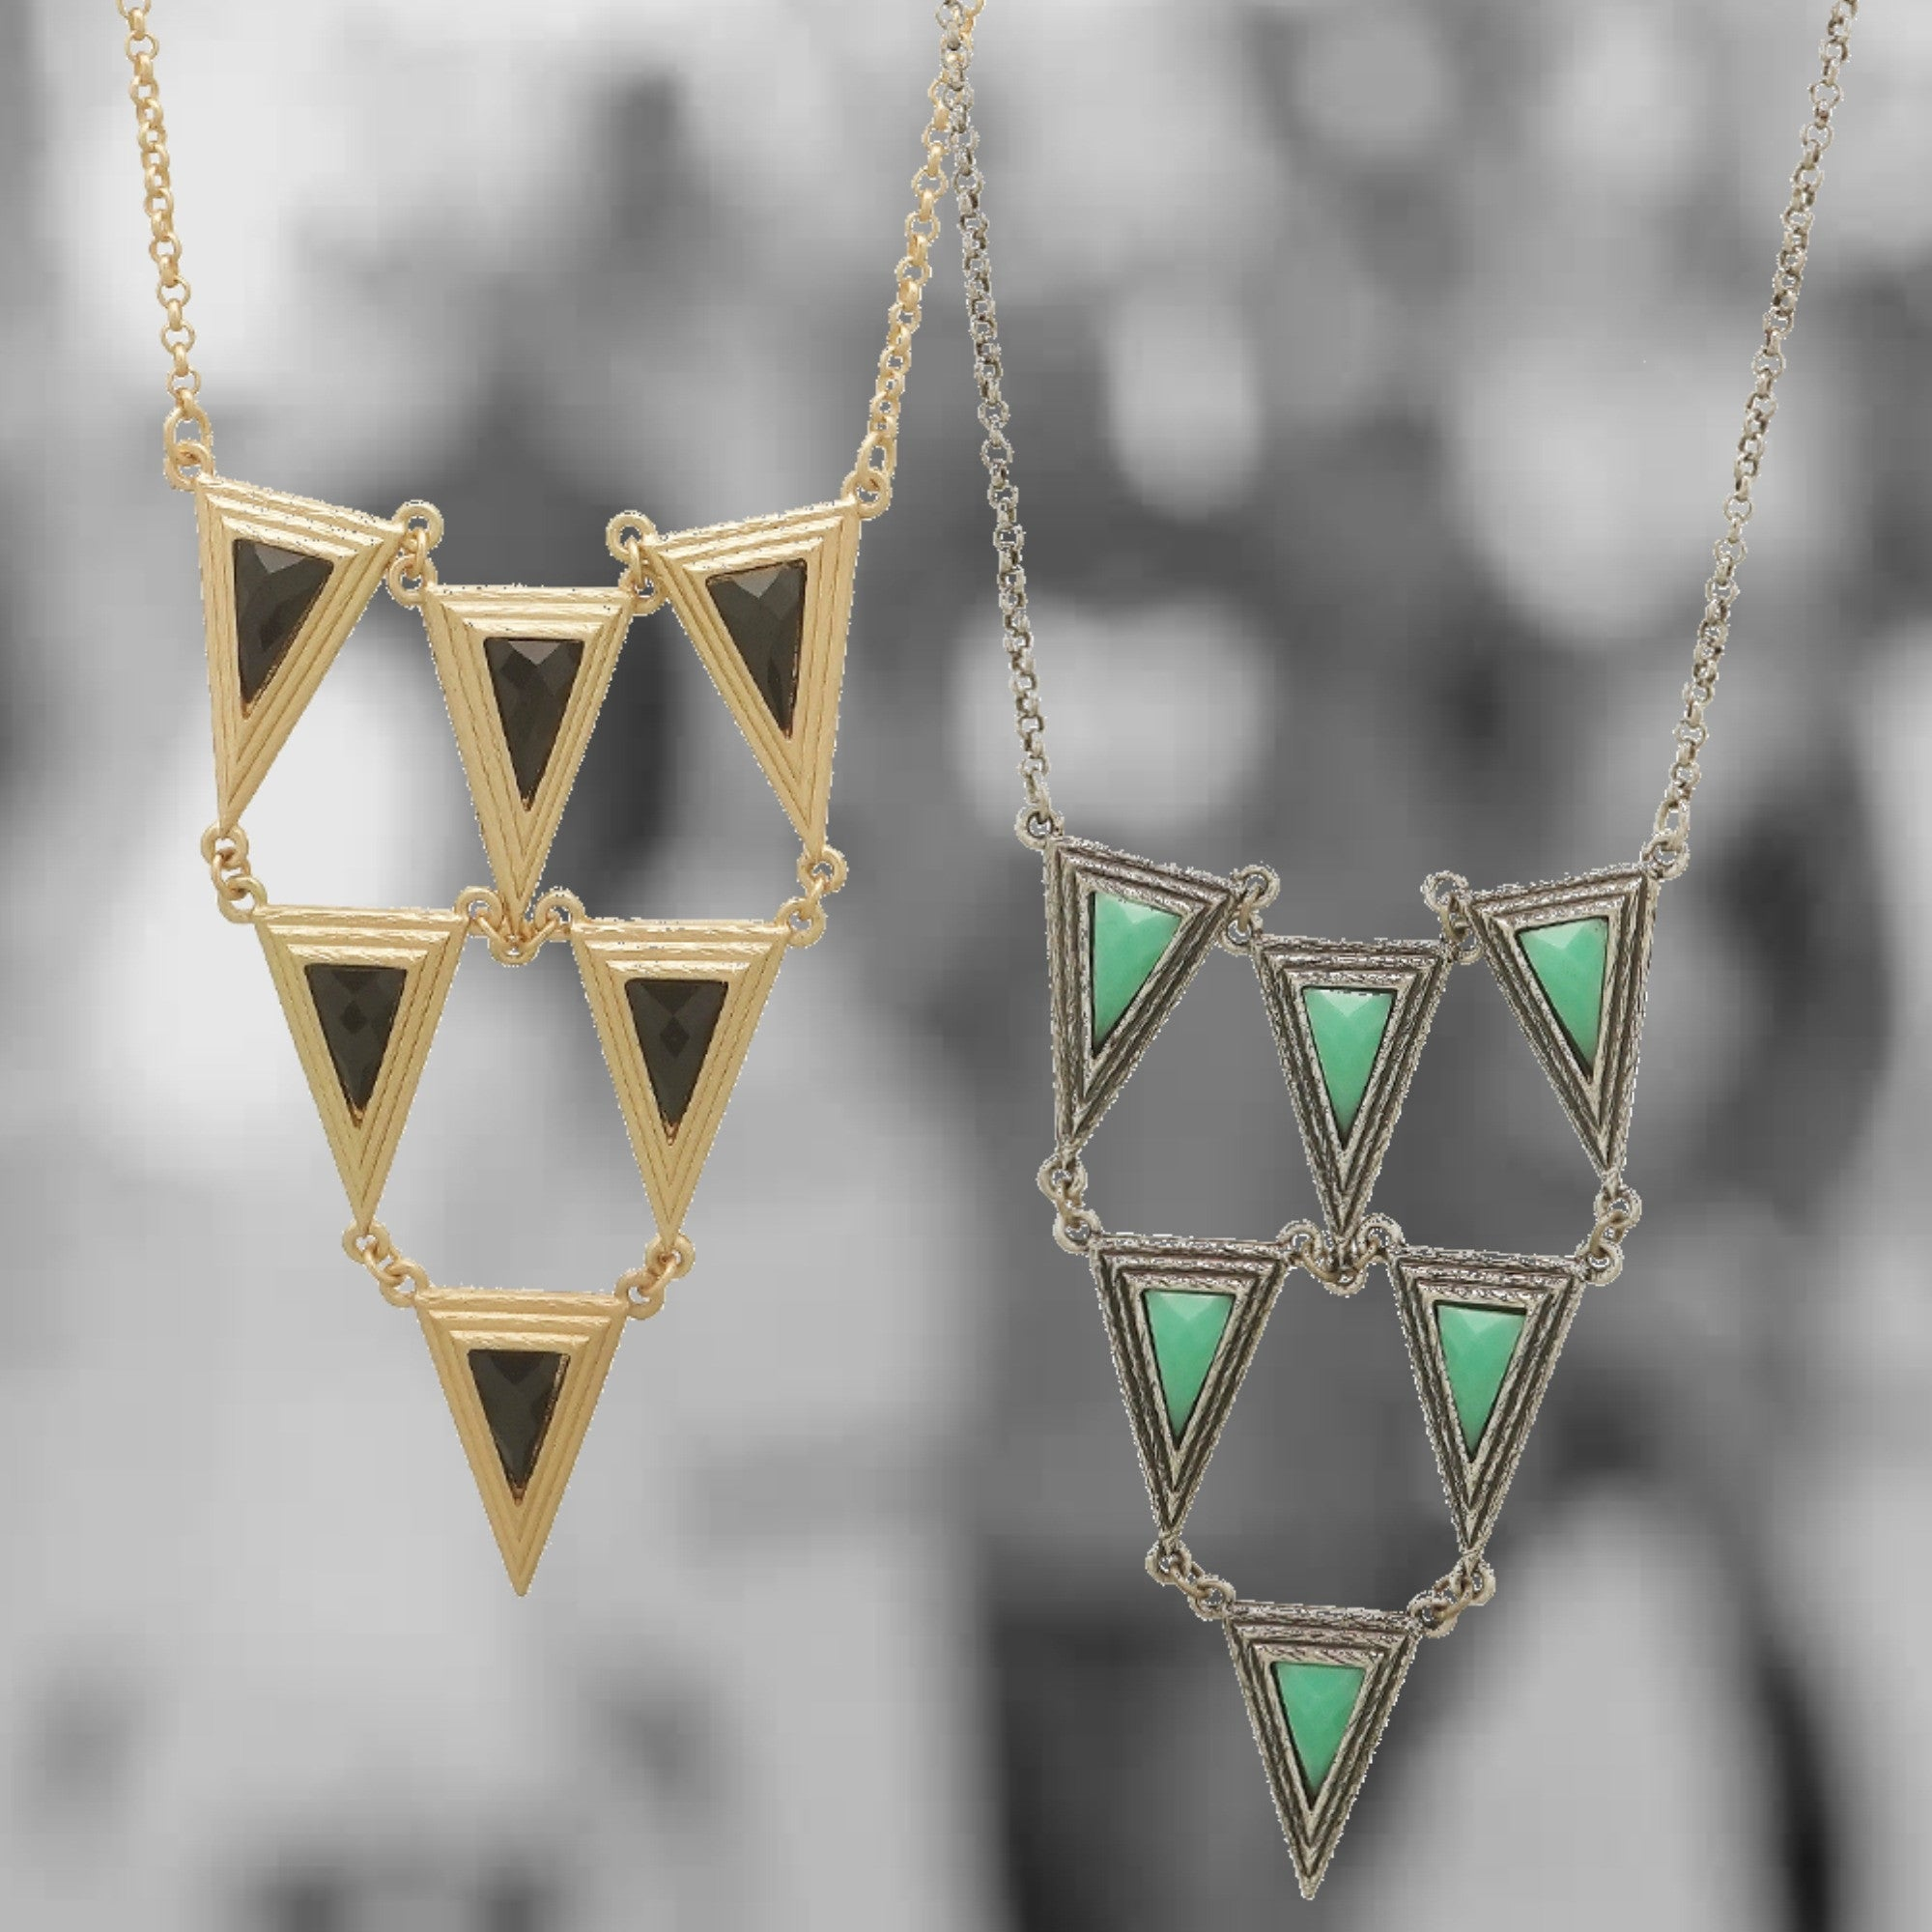 Long Triangle Necklace - 2 Colors- ShopLuLu.com , New York's Fashion District - NYC - Factory Direct. Basic As it Should Be